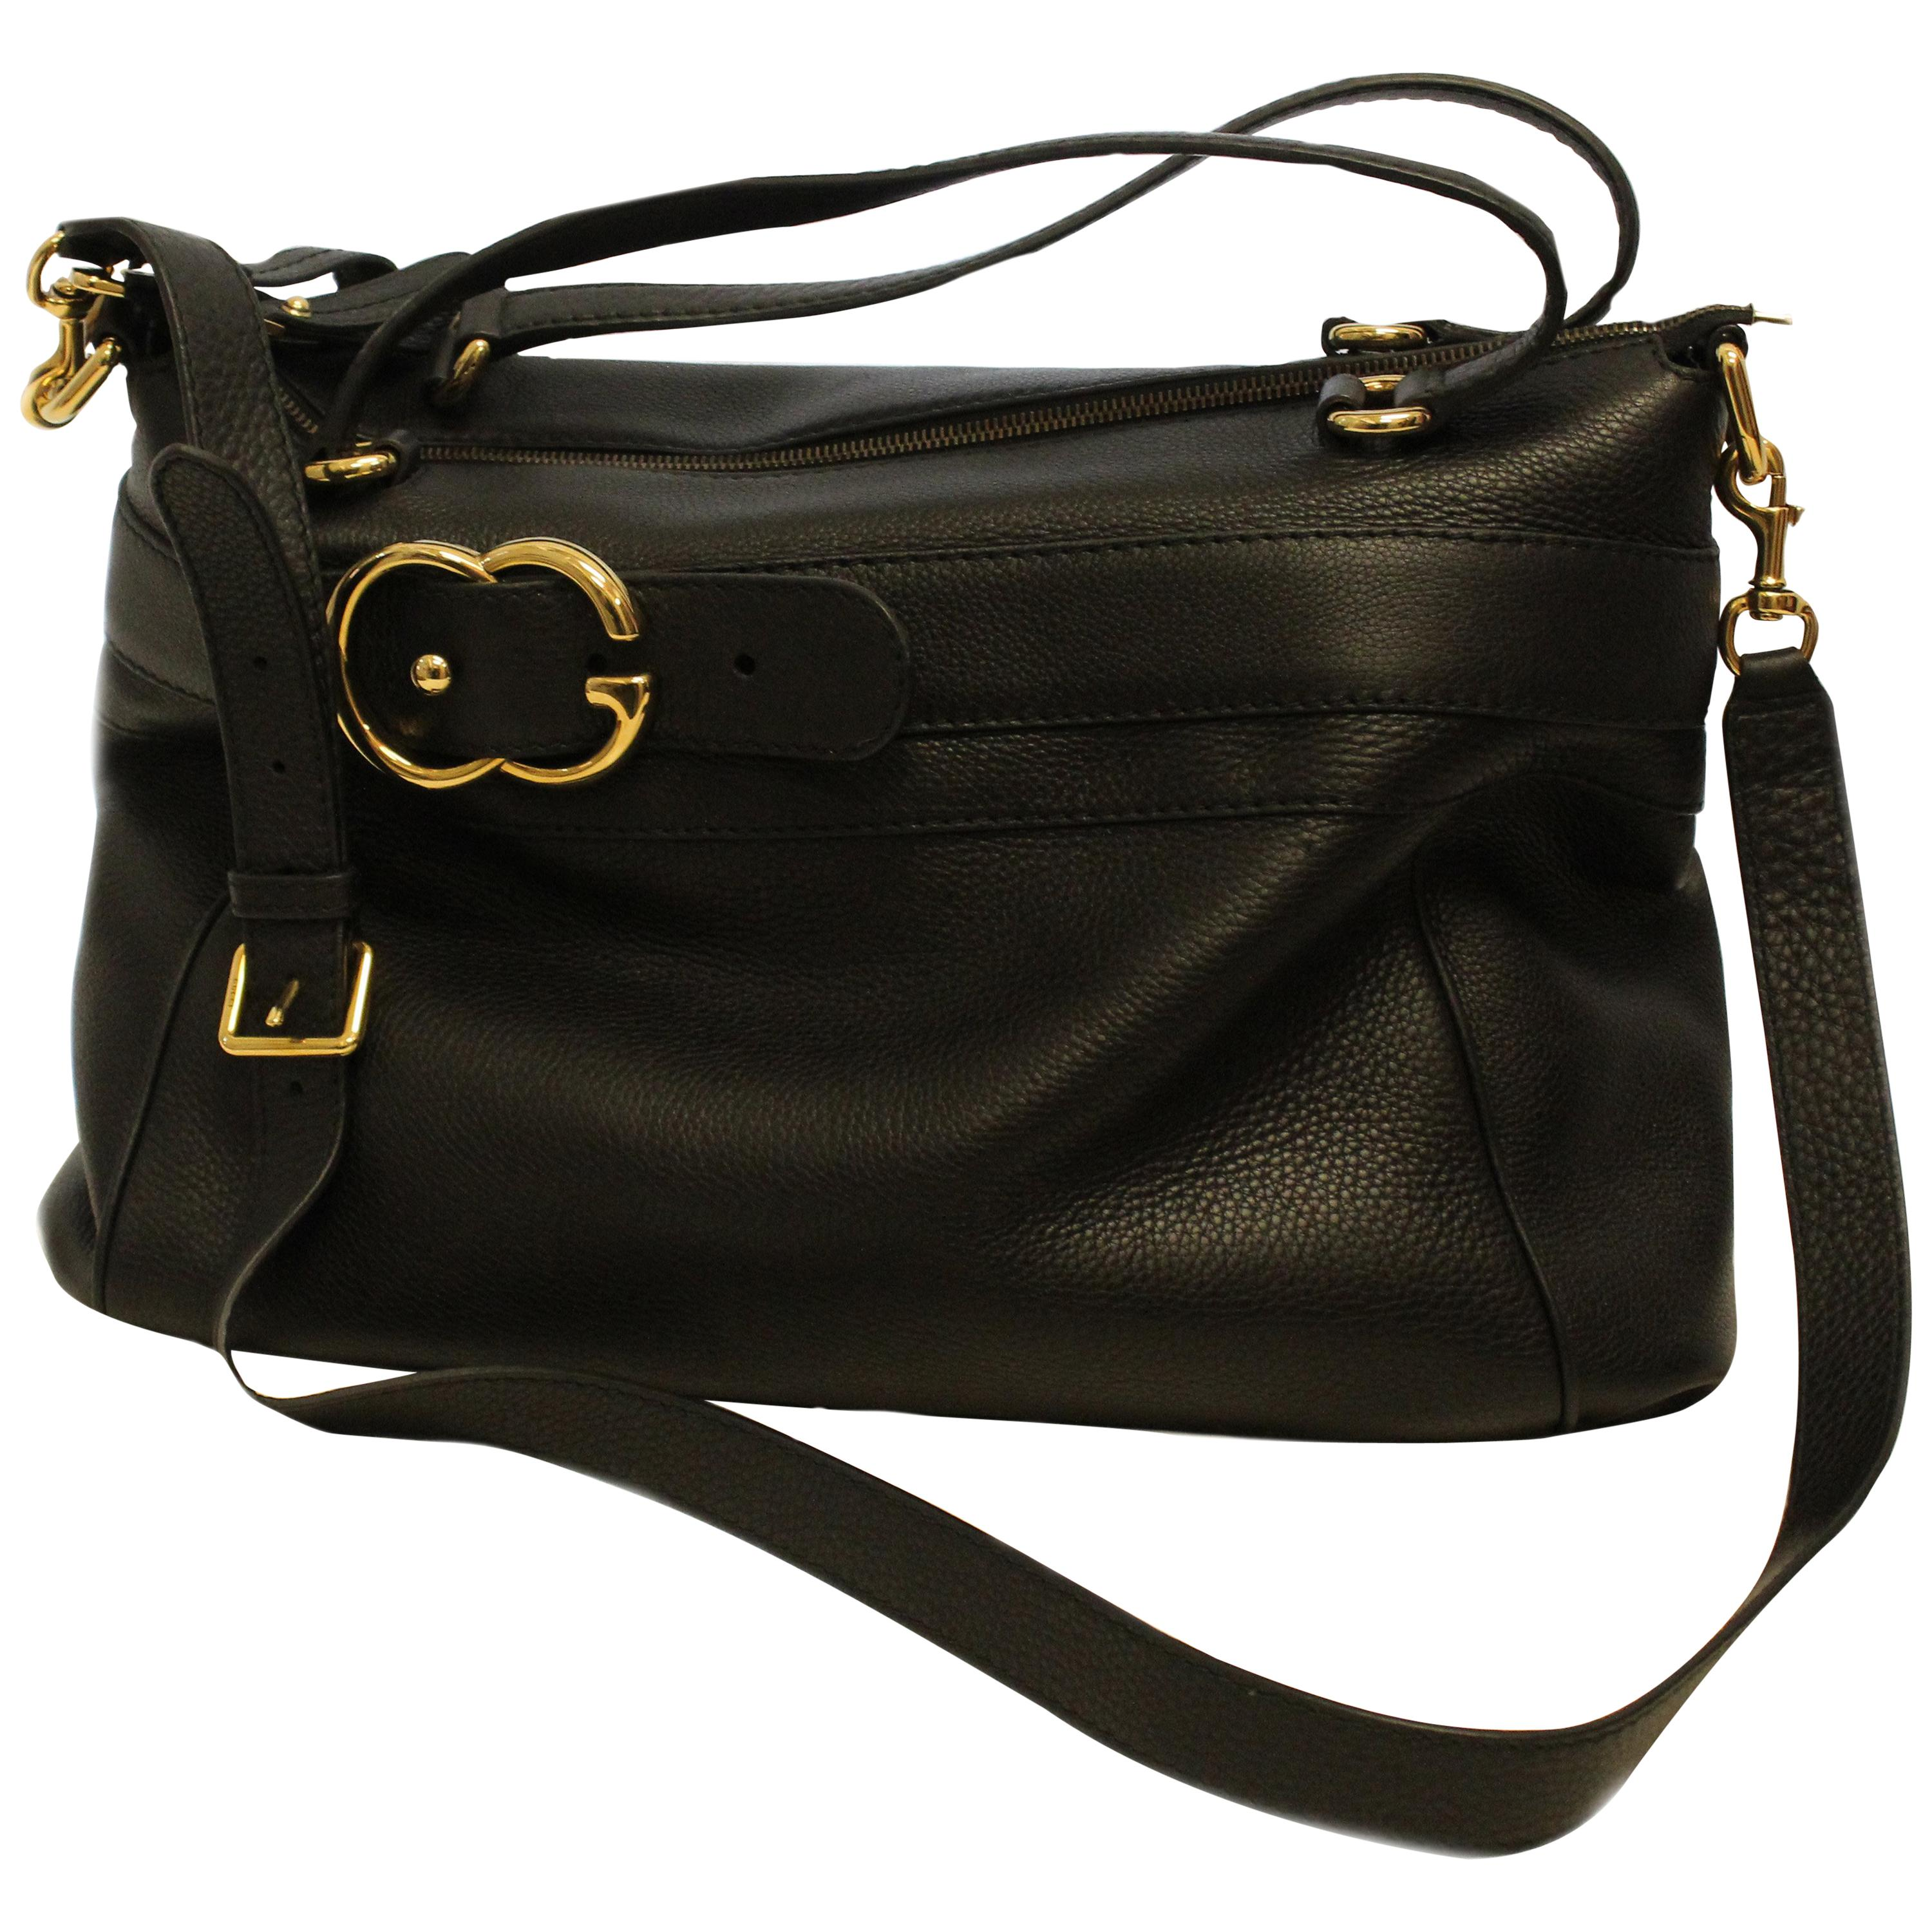 Vintage Gucci Handbags and Purses - 1,671 For Sale at 1stdibs b8f5397ca7